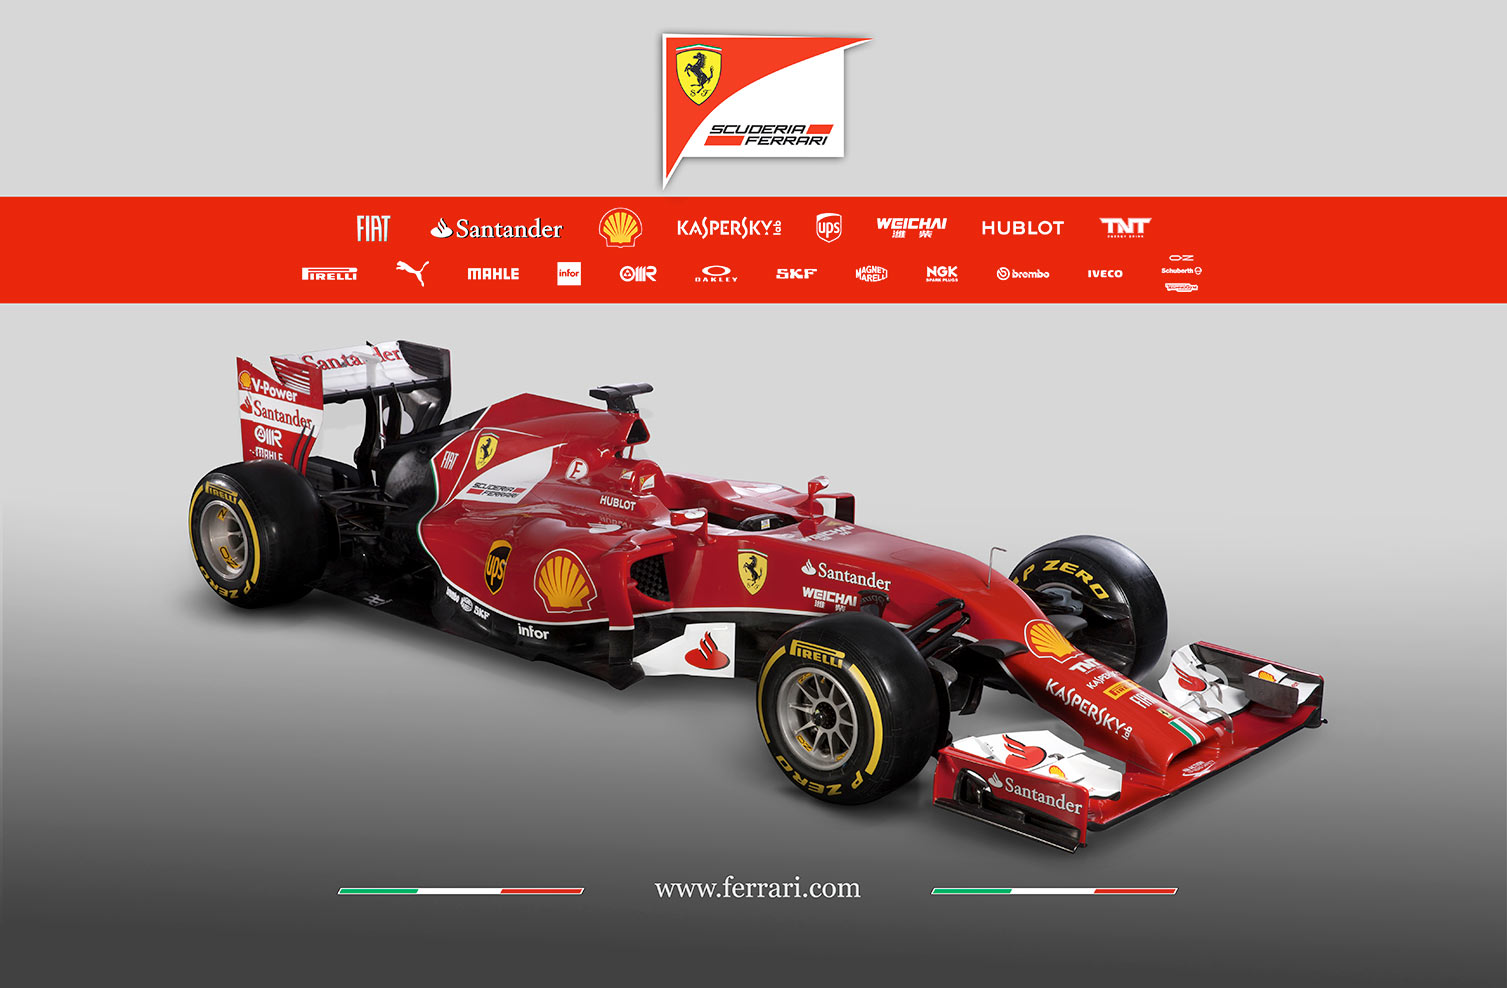 la scuderia ferrari pr sente la formule 1 f14t plan te. Black Bedroom Furniture Sets. Home Design Ideas